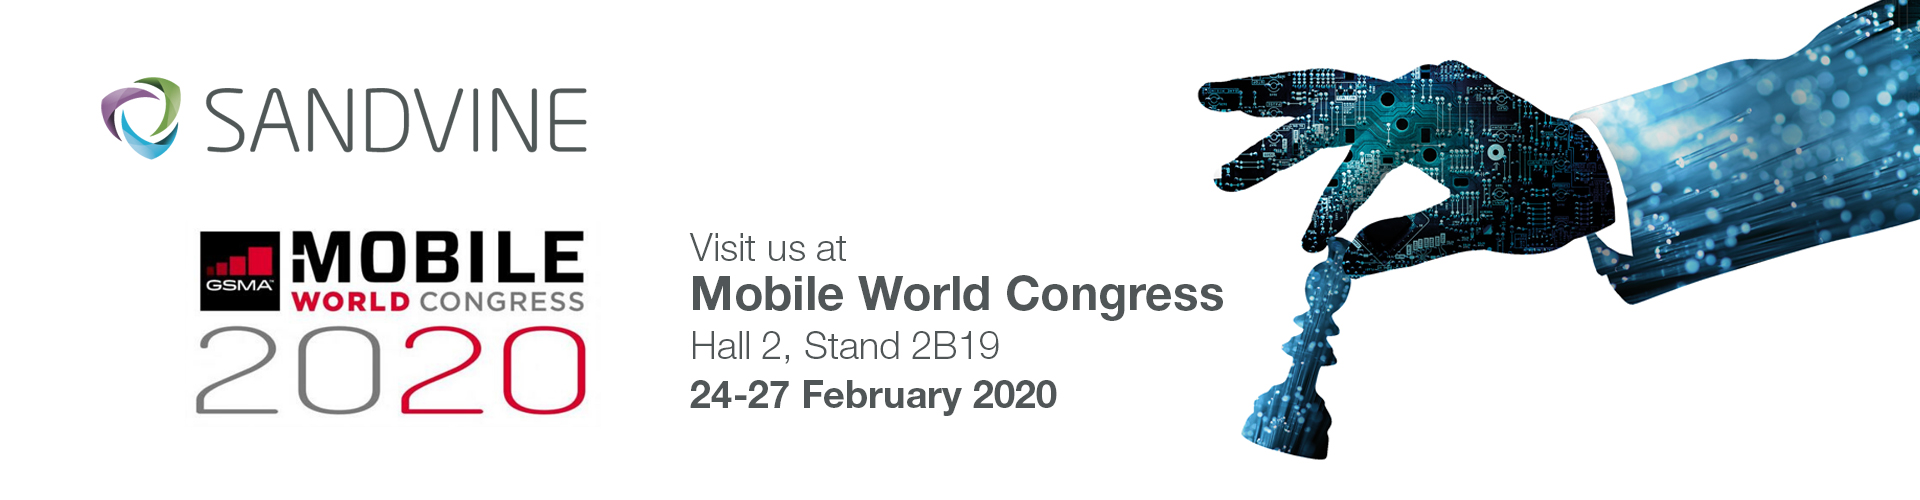 MWC 2020 Landing Page Banner